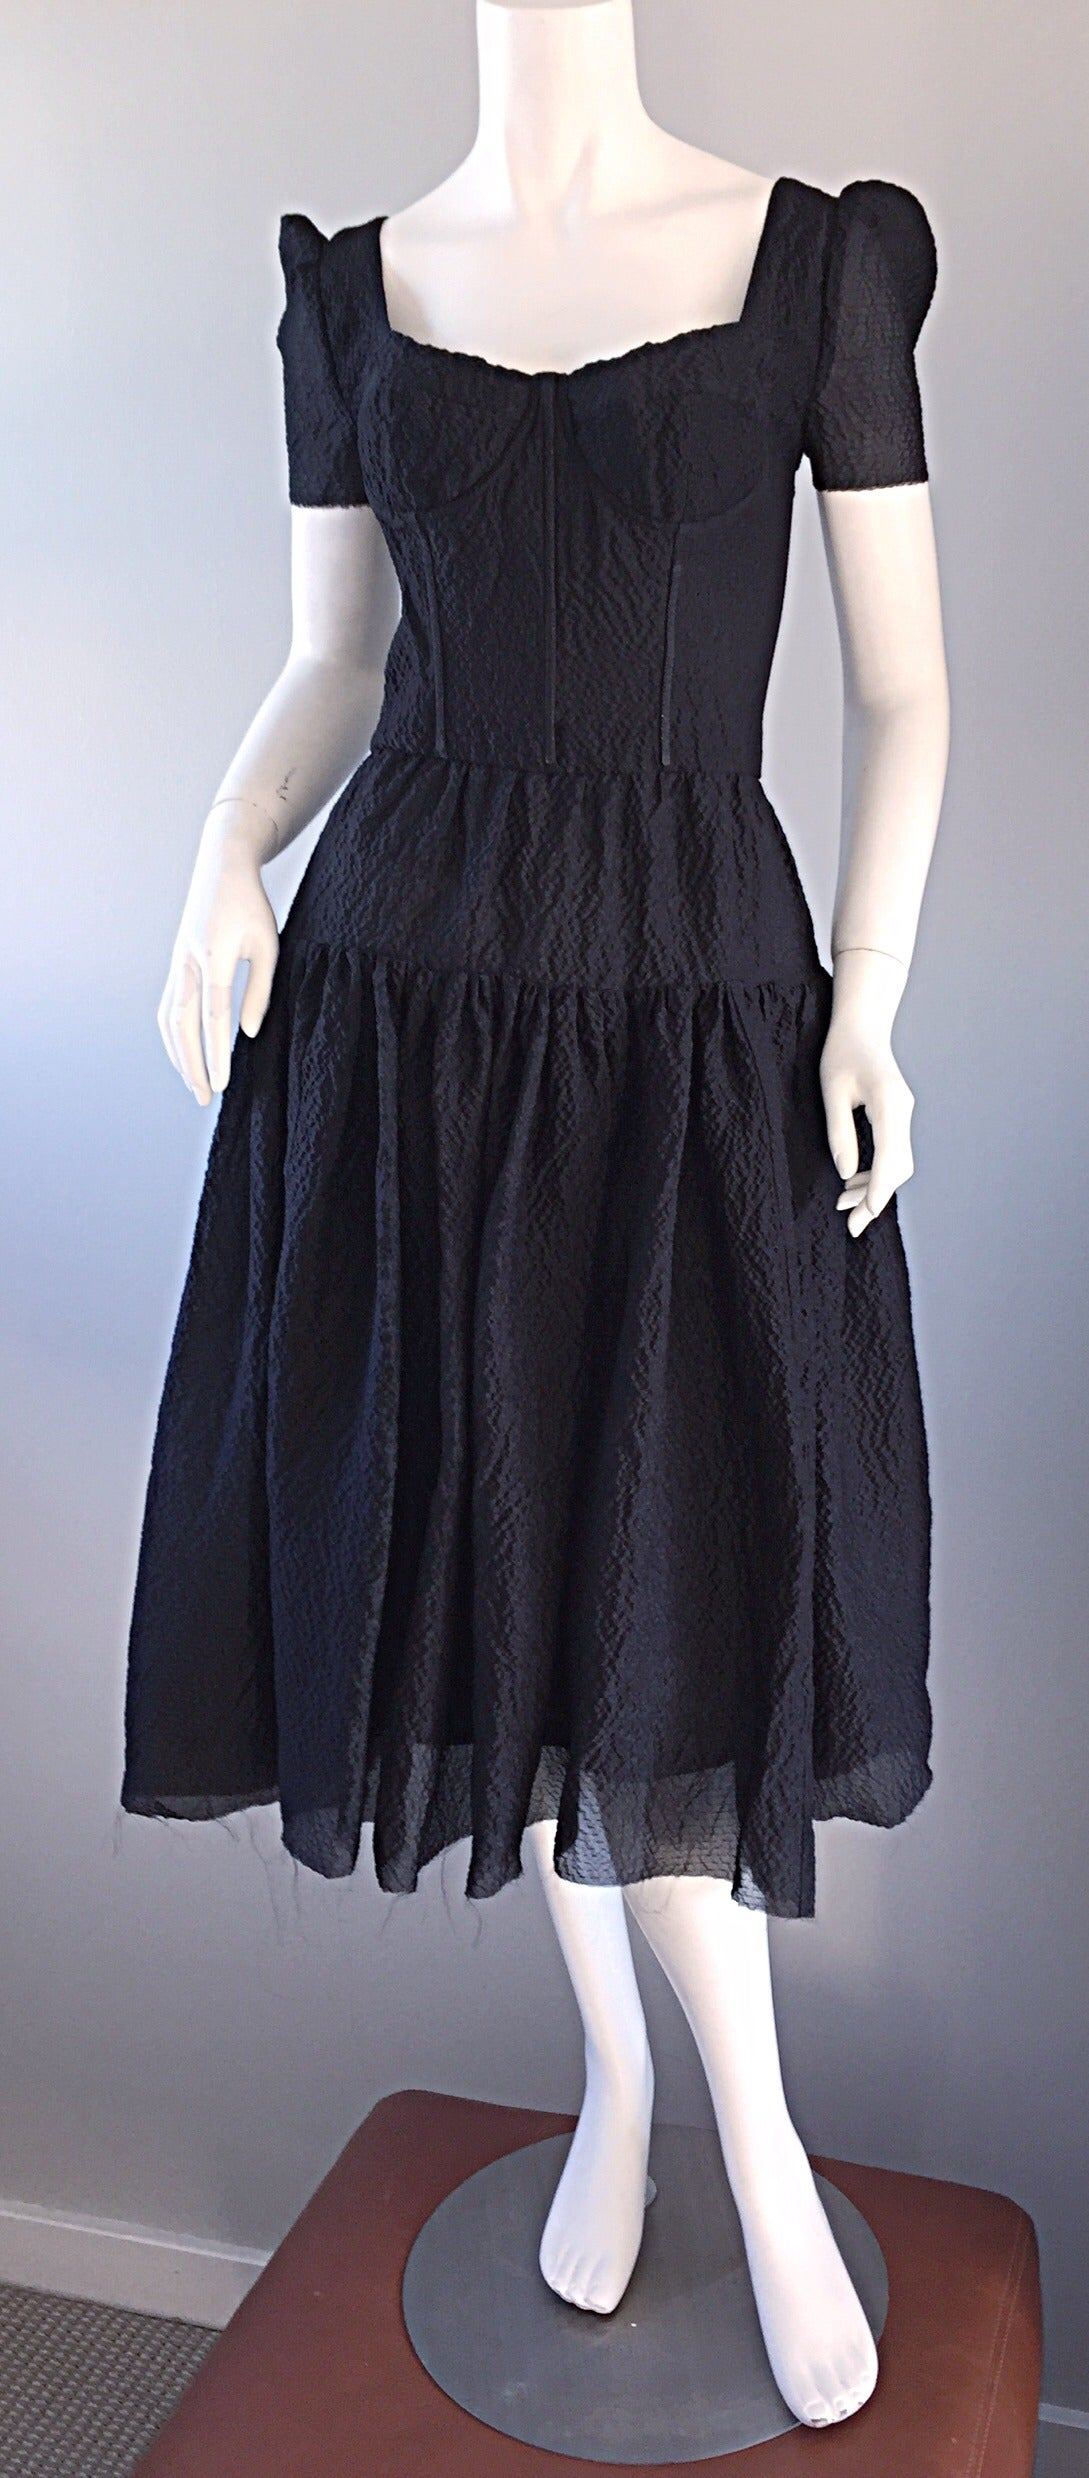 Beautiful brand new Dolce & Gabbana black silk dress! Signature bustier/corset style bodice. Insane amount of detail and workmanship was put into this dress, which retailed for $4,500! 1950s style, with an edge! Unfinished edges at hem. Silk covered